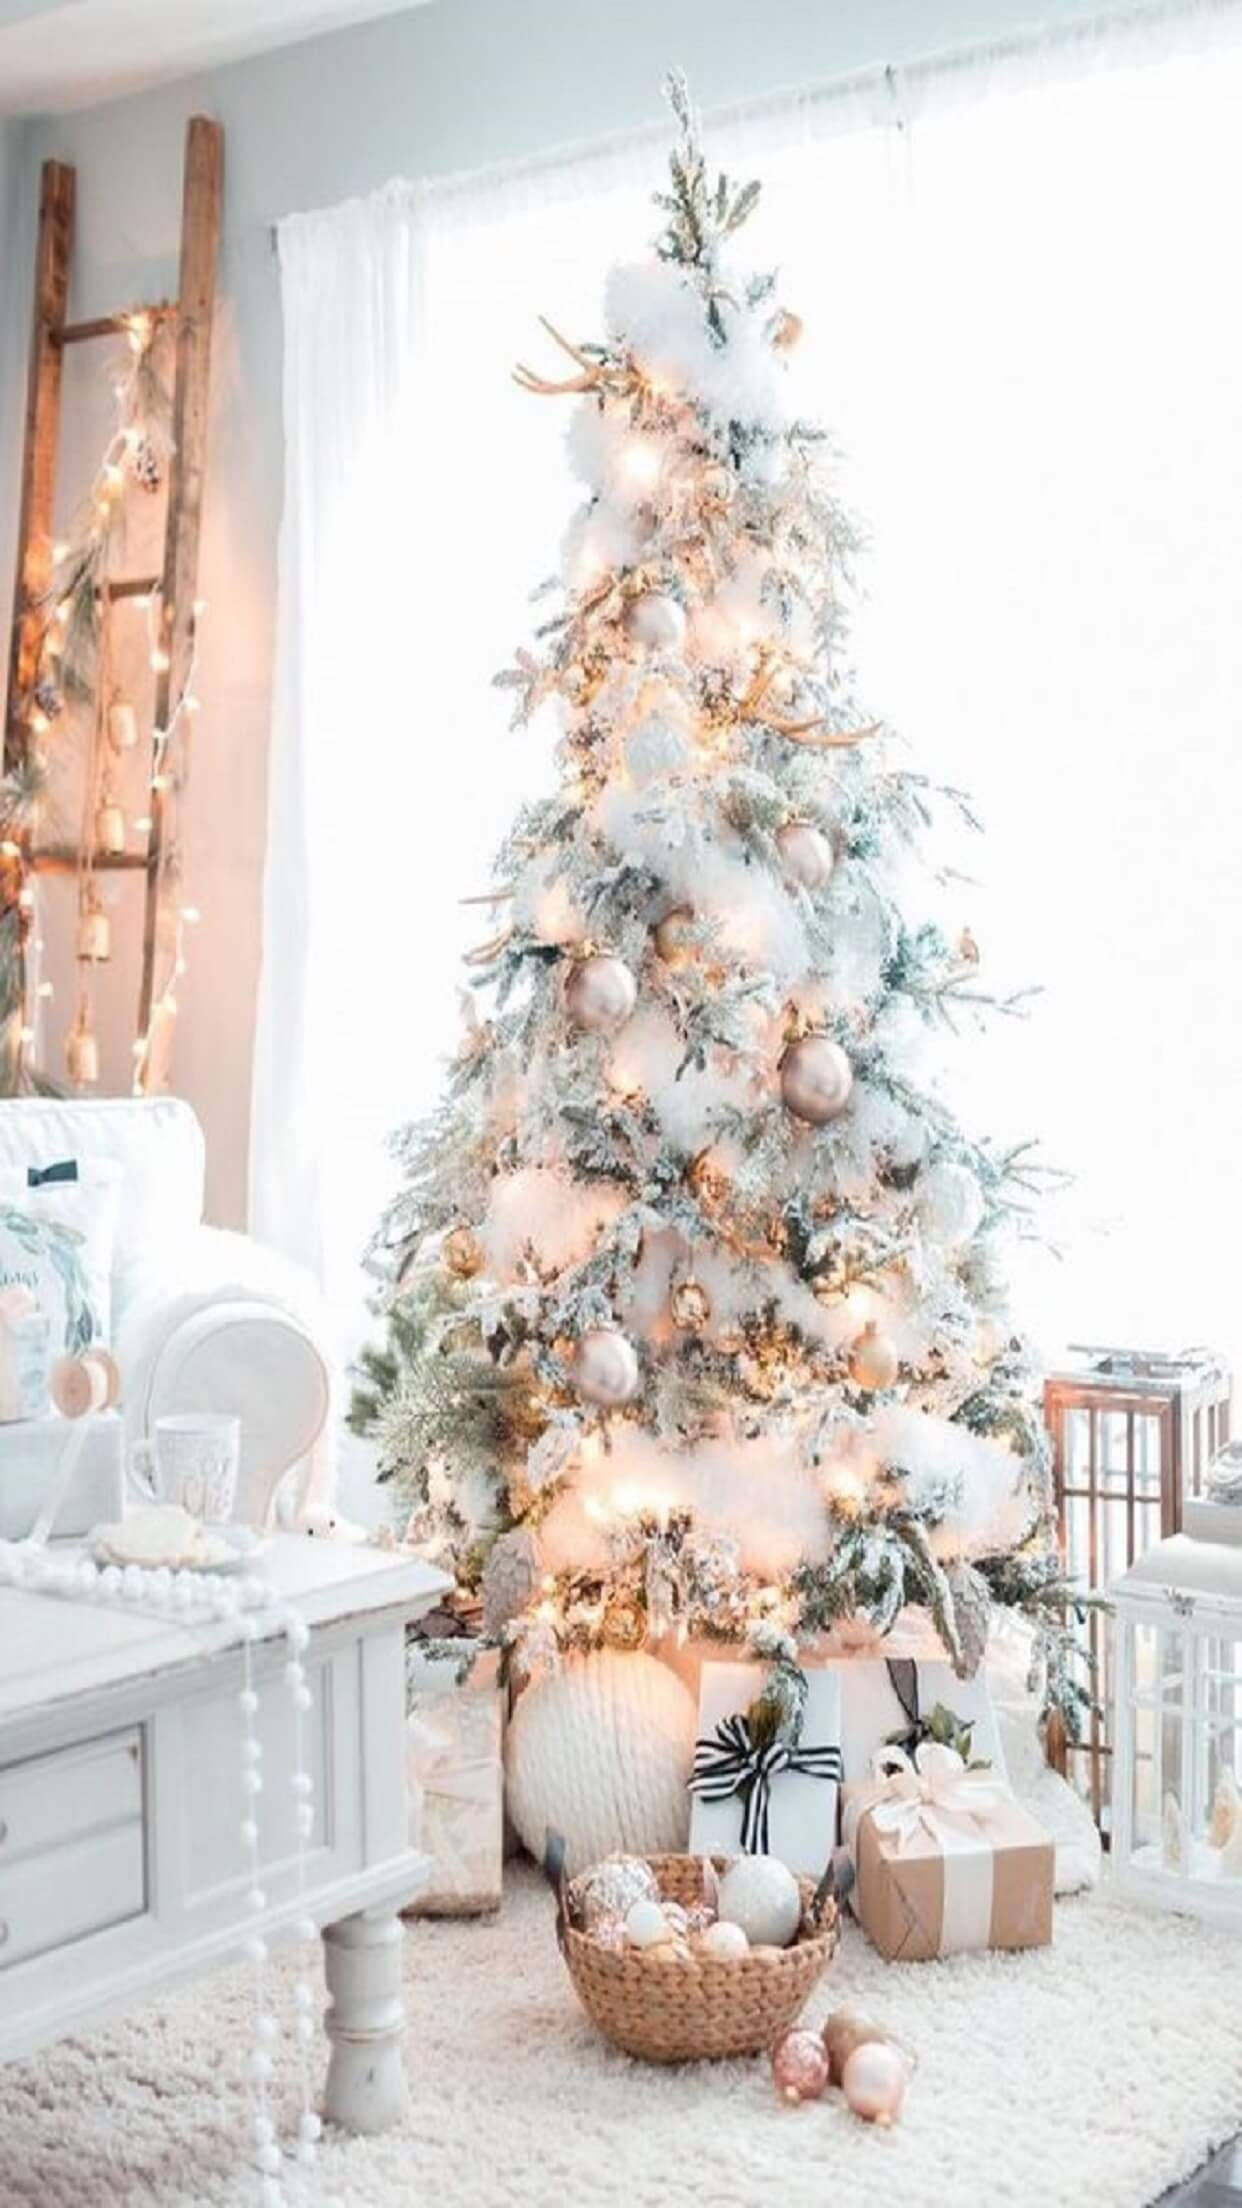 Iphone Wallpaper Christmas Tree Snow Decoration Ideas 1242x2208 Wallpaper Teahub Io